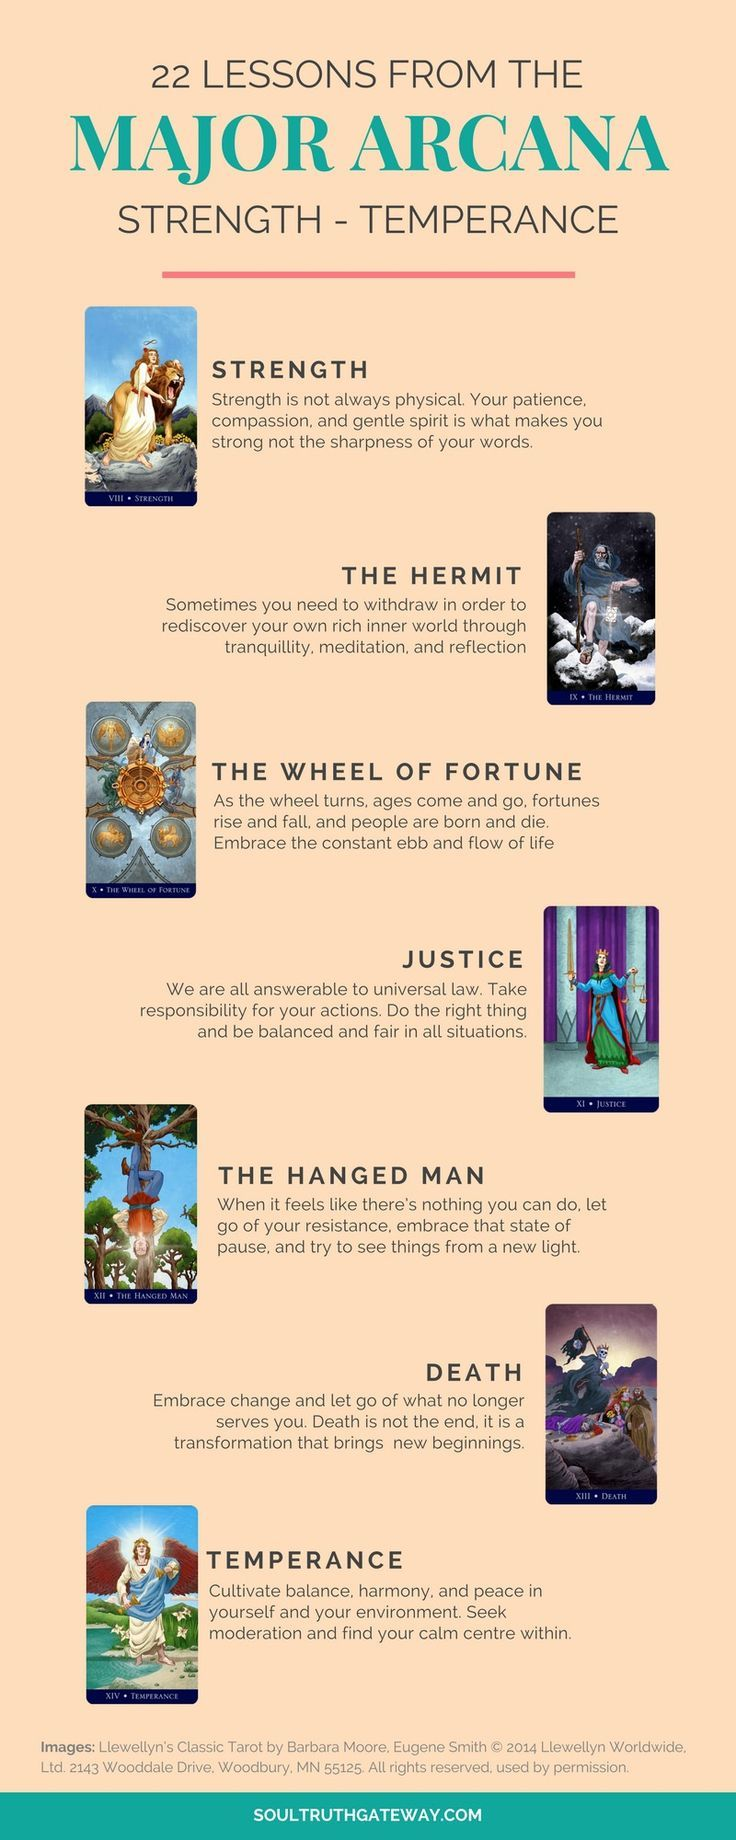 22 Lessons From The Major Arcana Part 2: Strength - Temperance | Tarot Card Meanings | Tarot Card Meanings Cheat Sheets | Tarot Cheat Sheet | Tarot Major Arcana | Tarot Major Arcana Meanings | Fools Journey Tarot #tarot #soultruthgateway